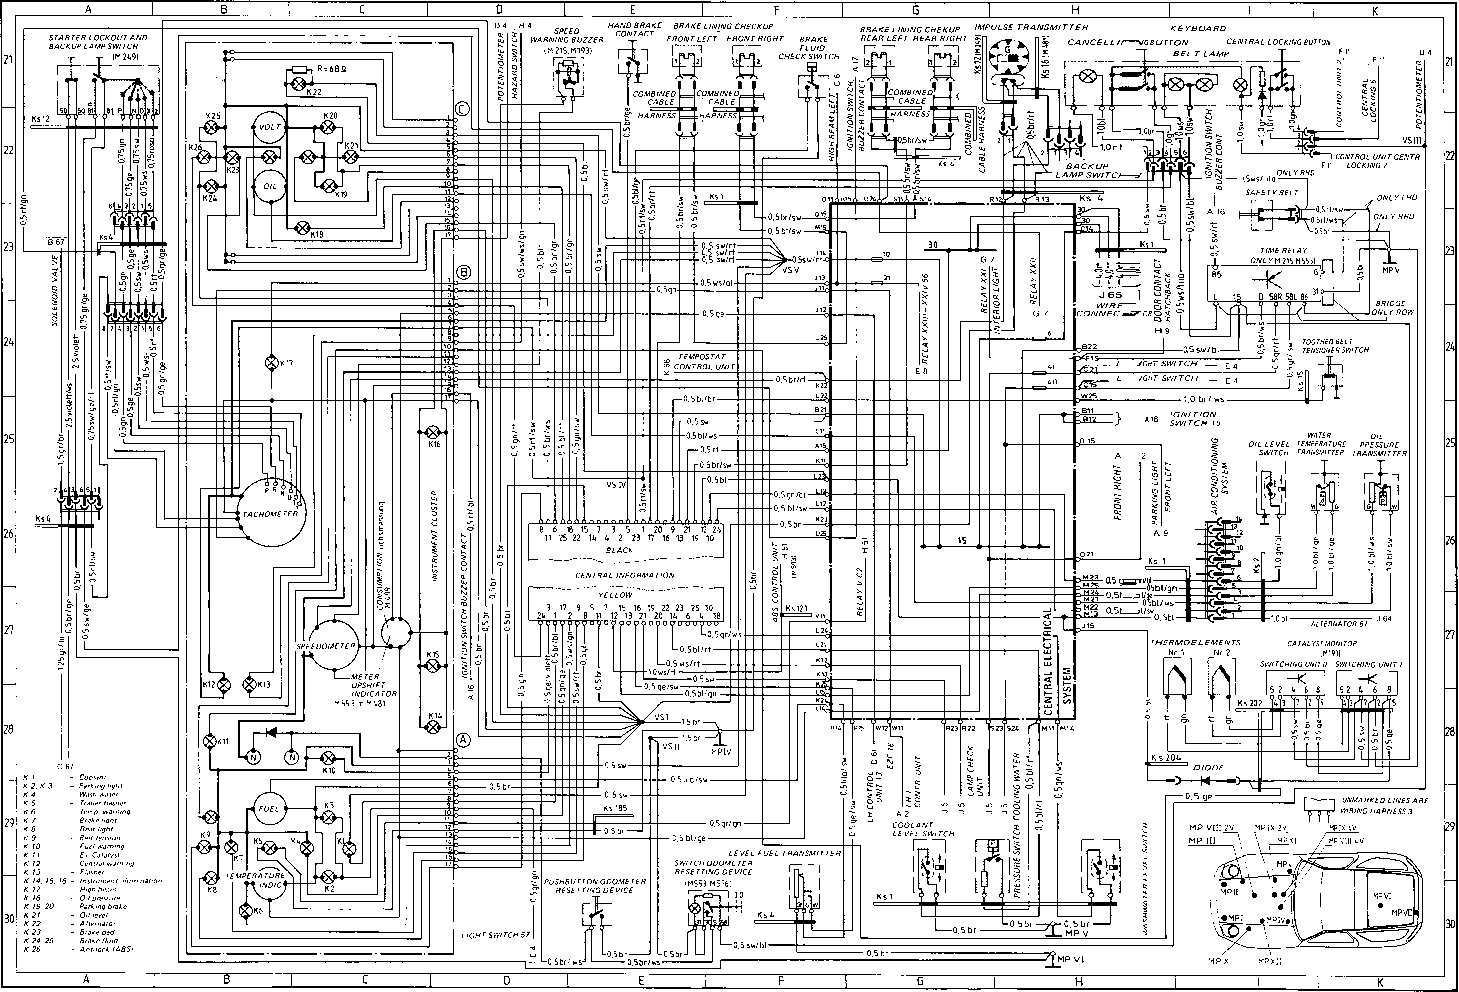 2129_923_2014 porsche 928 wiring diagram porsche wiring diagrams porsche 911 turbo vacuum diagram \u2022 wiring  at nearapp.co